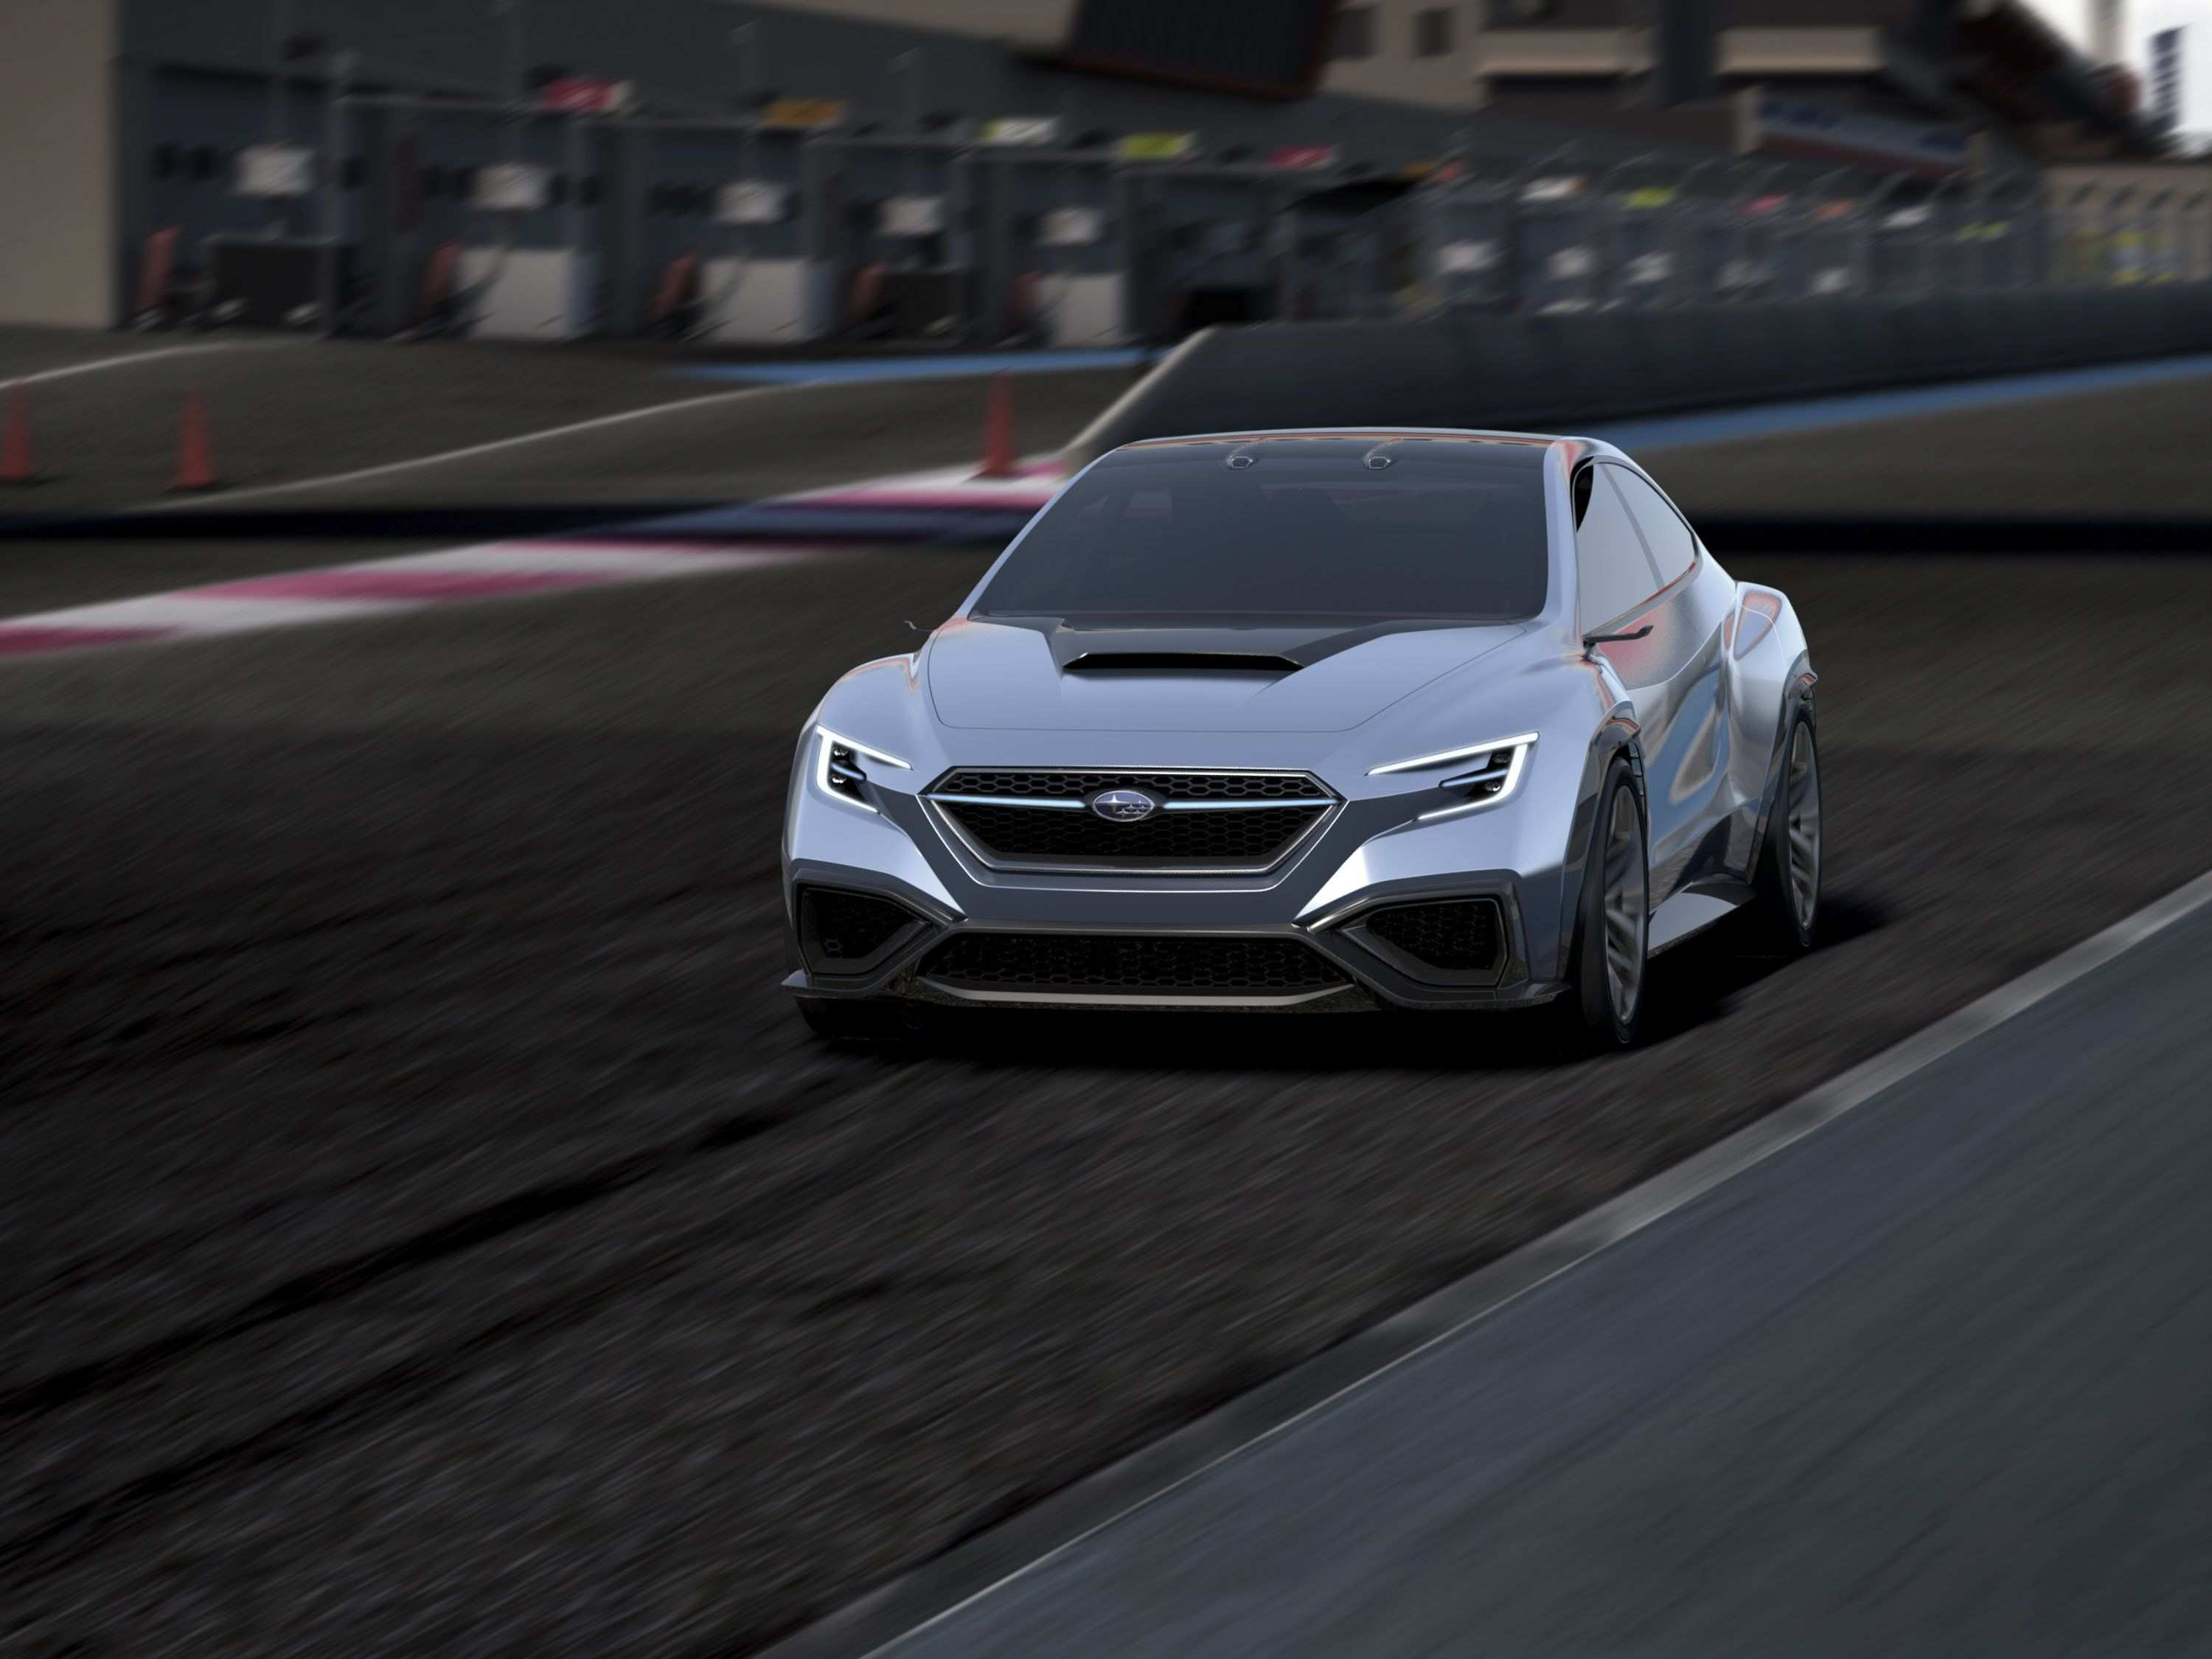 40 Best Review 2020 Subaru Wrx Redesign Research New by 2020 Subaru Wrx Redesign